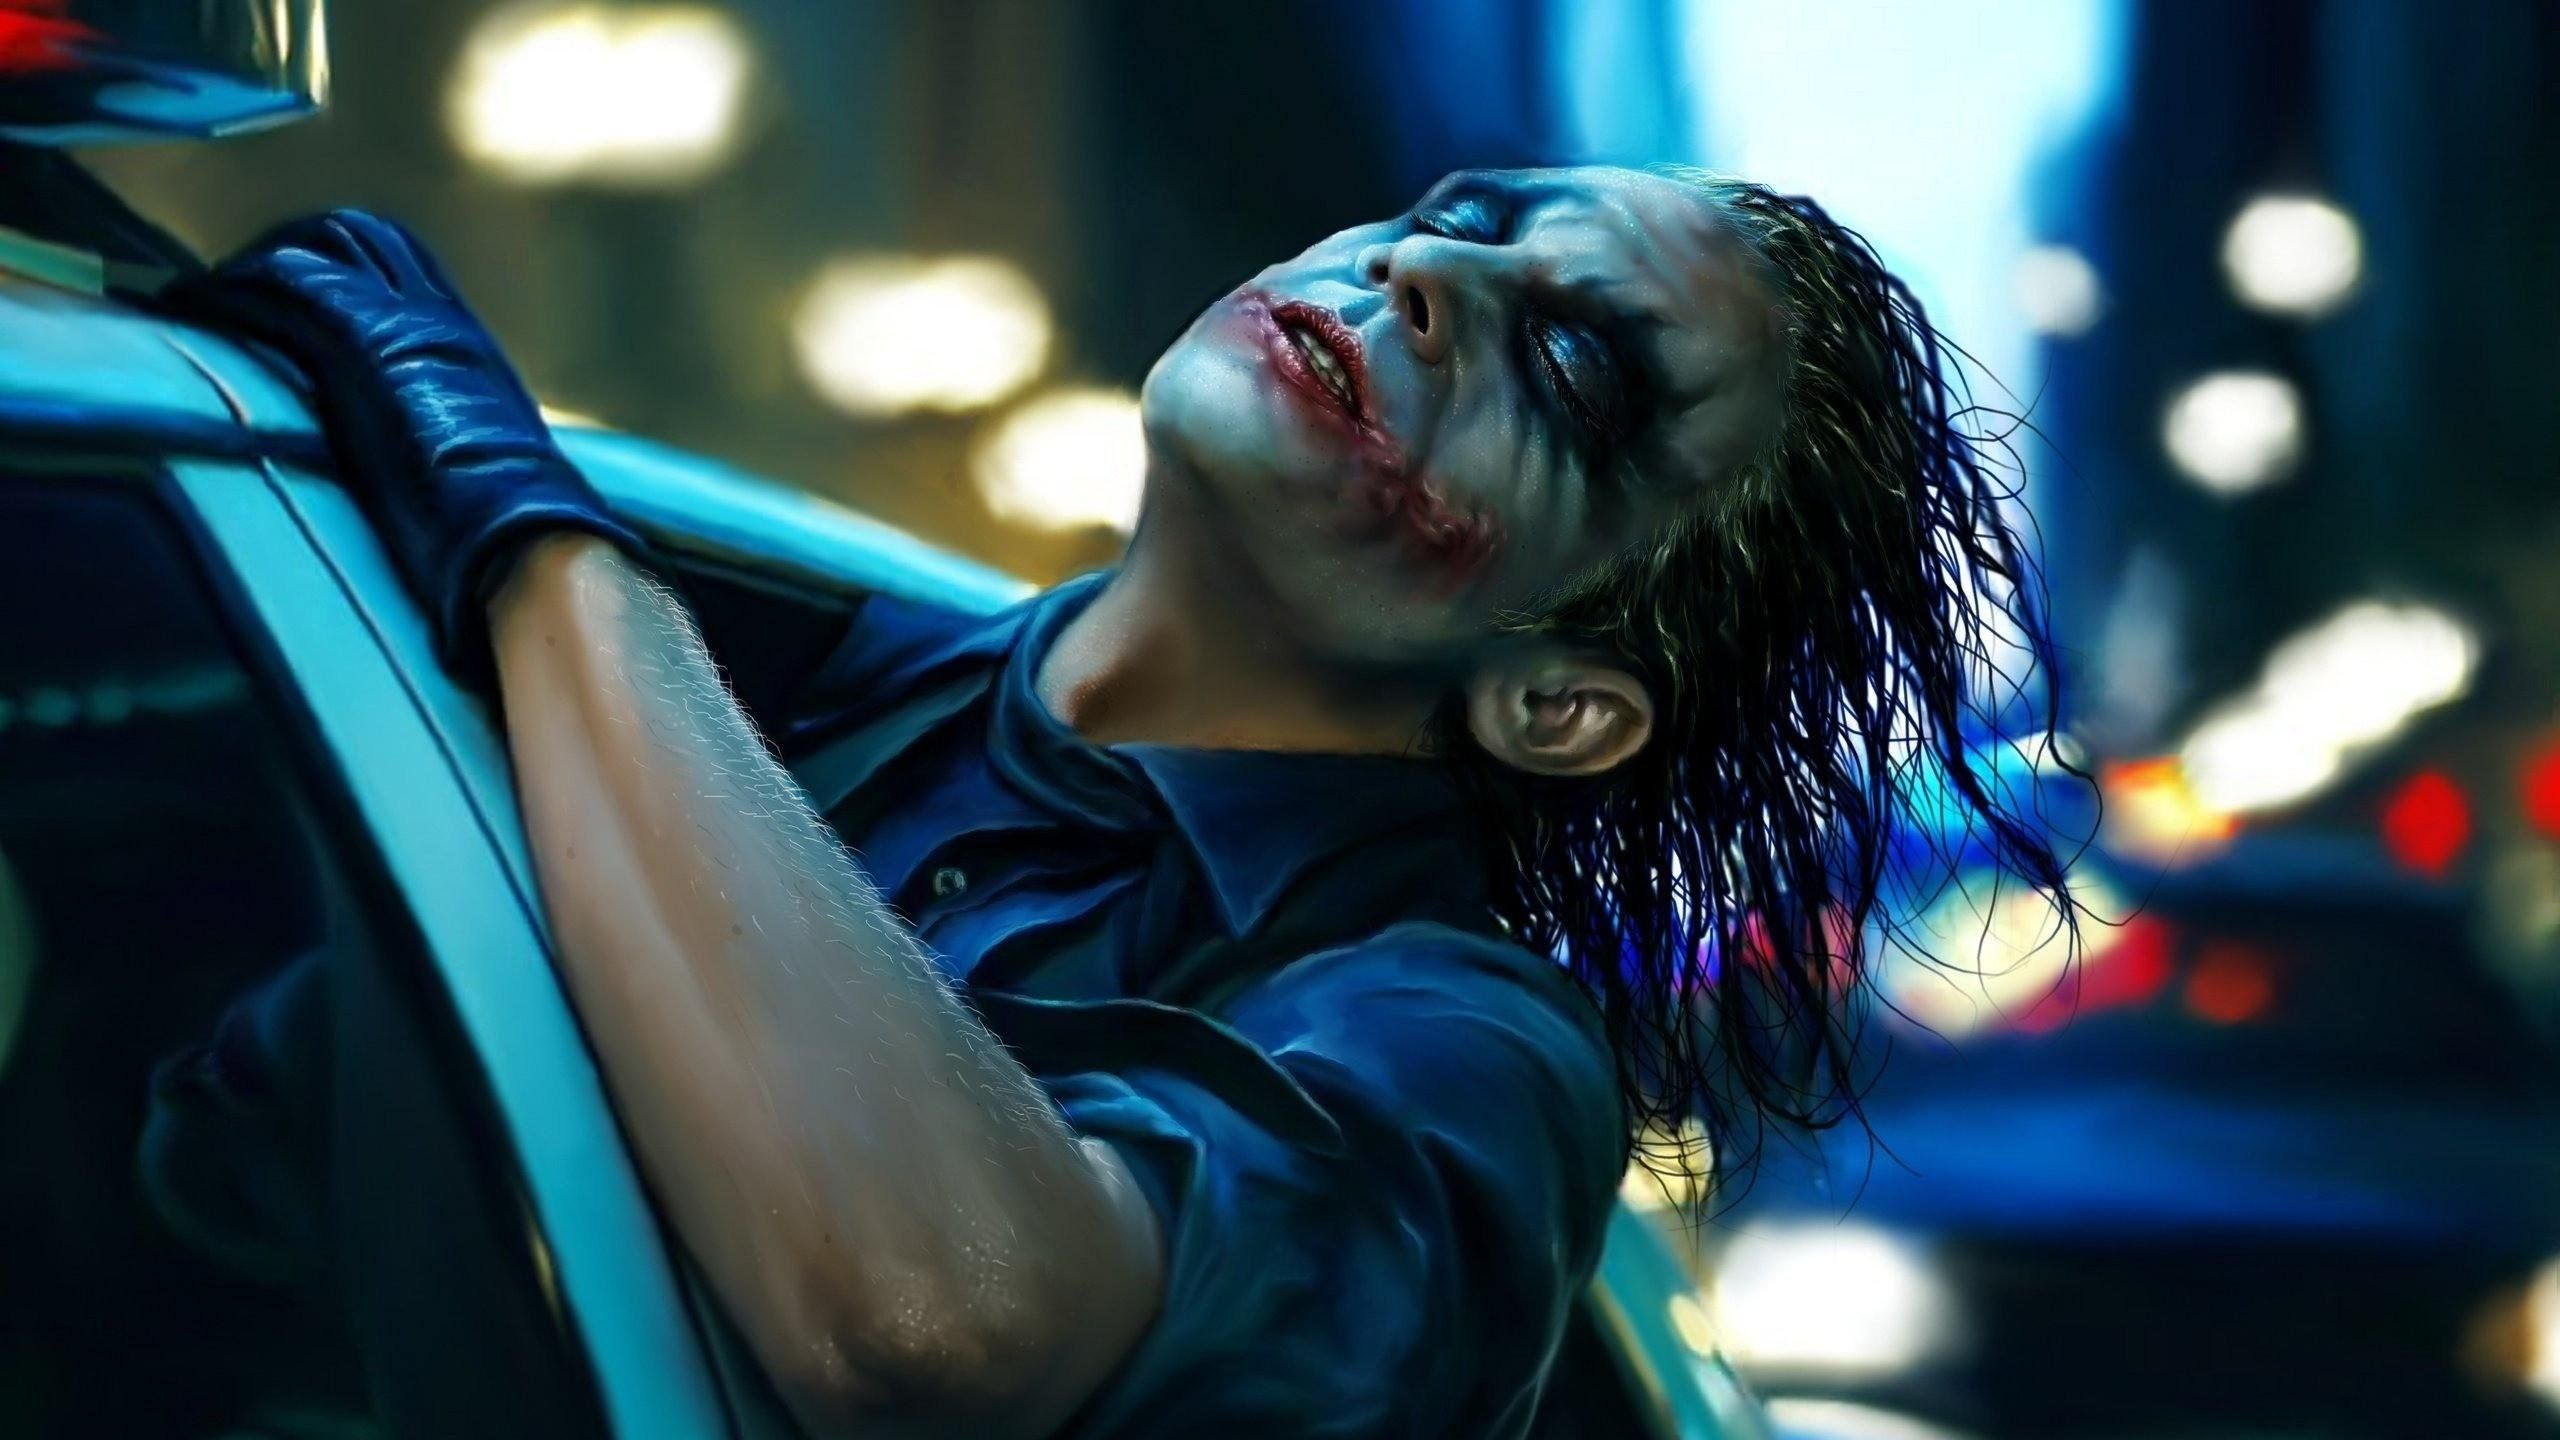 Batman Wallpapers Full HD Group 1920x1080 The Joker Dark